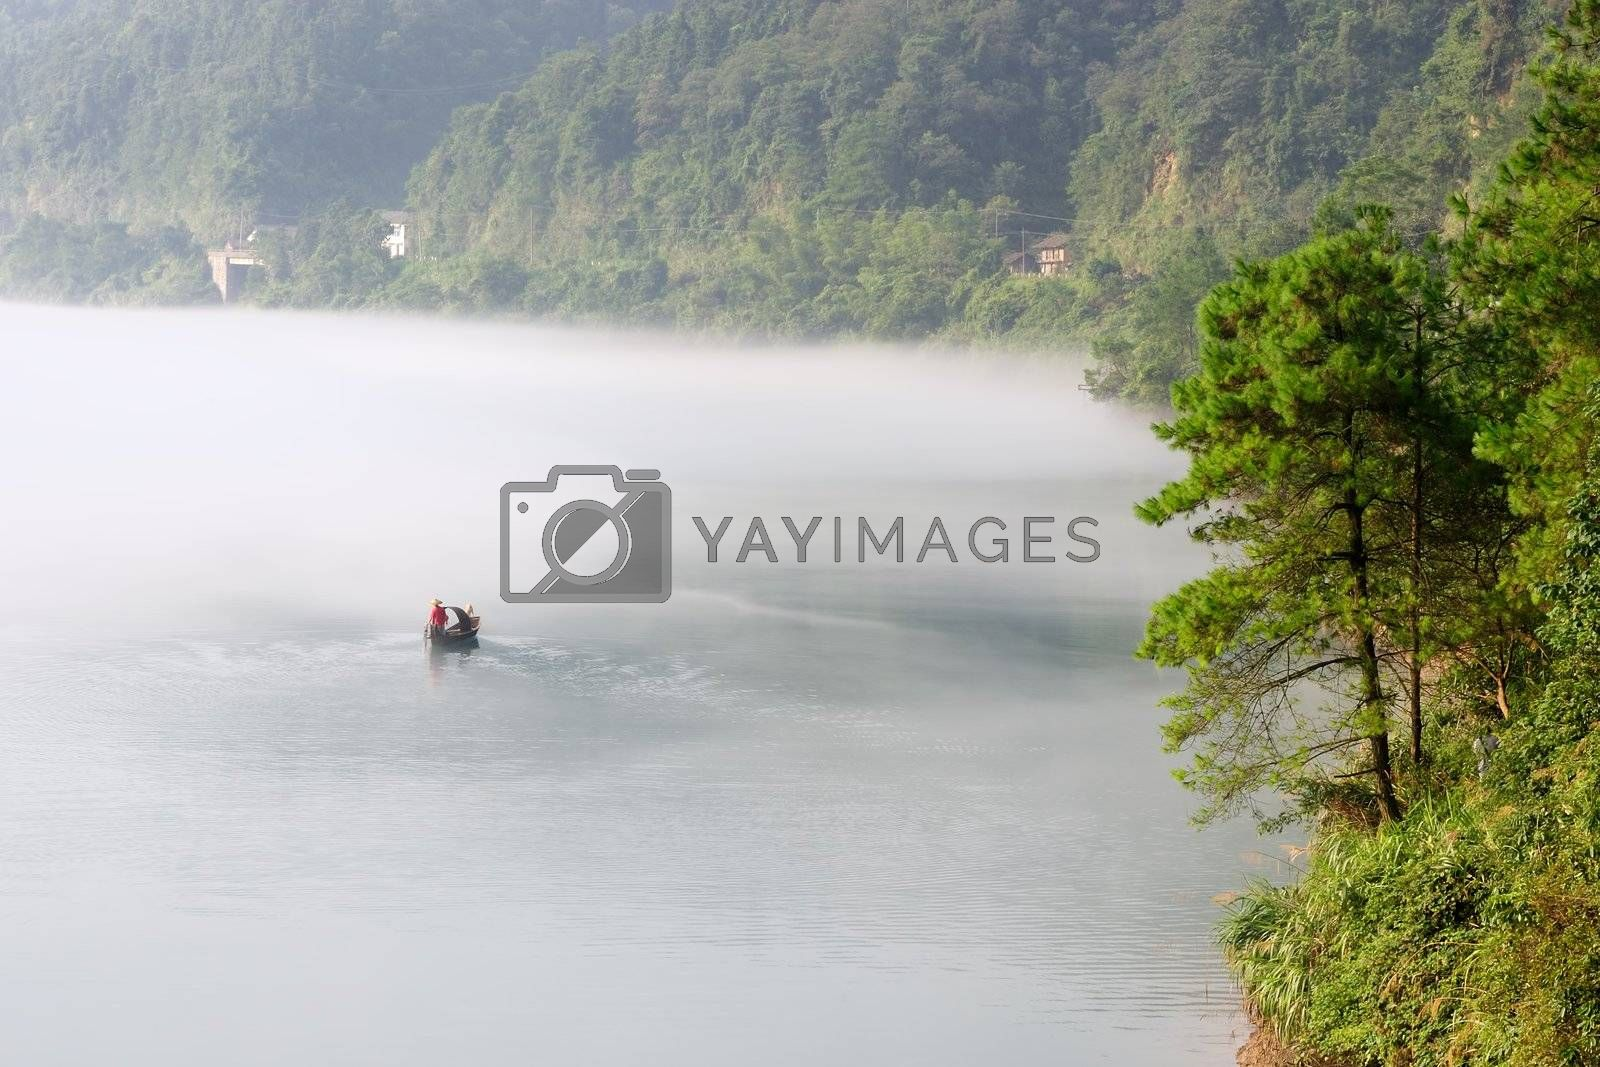 Morning fog rolls across the chilly river water, photo taken in hunan province of China